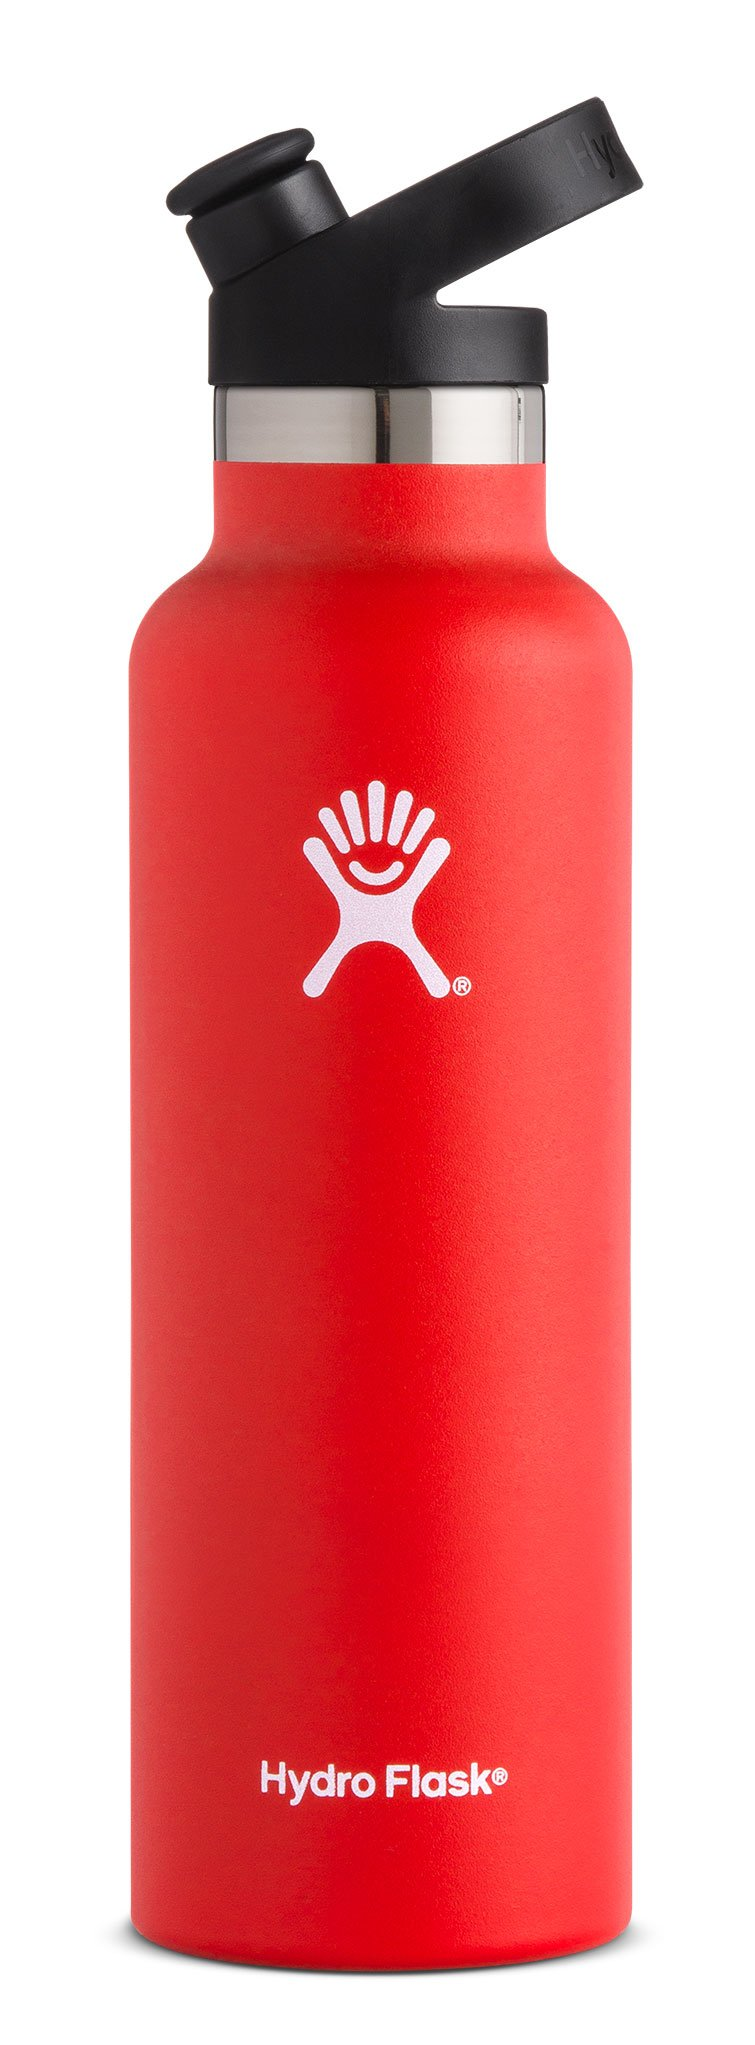 Hydro Flask 21 oz Double Wall Vacuum Insulated Stainless Steel Sports Water Bottle, Standard Mouth with BPA Free Sport Cap, Lava